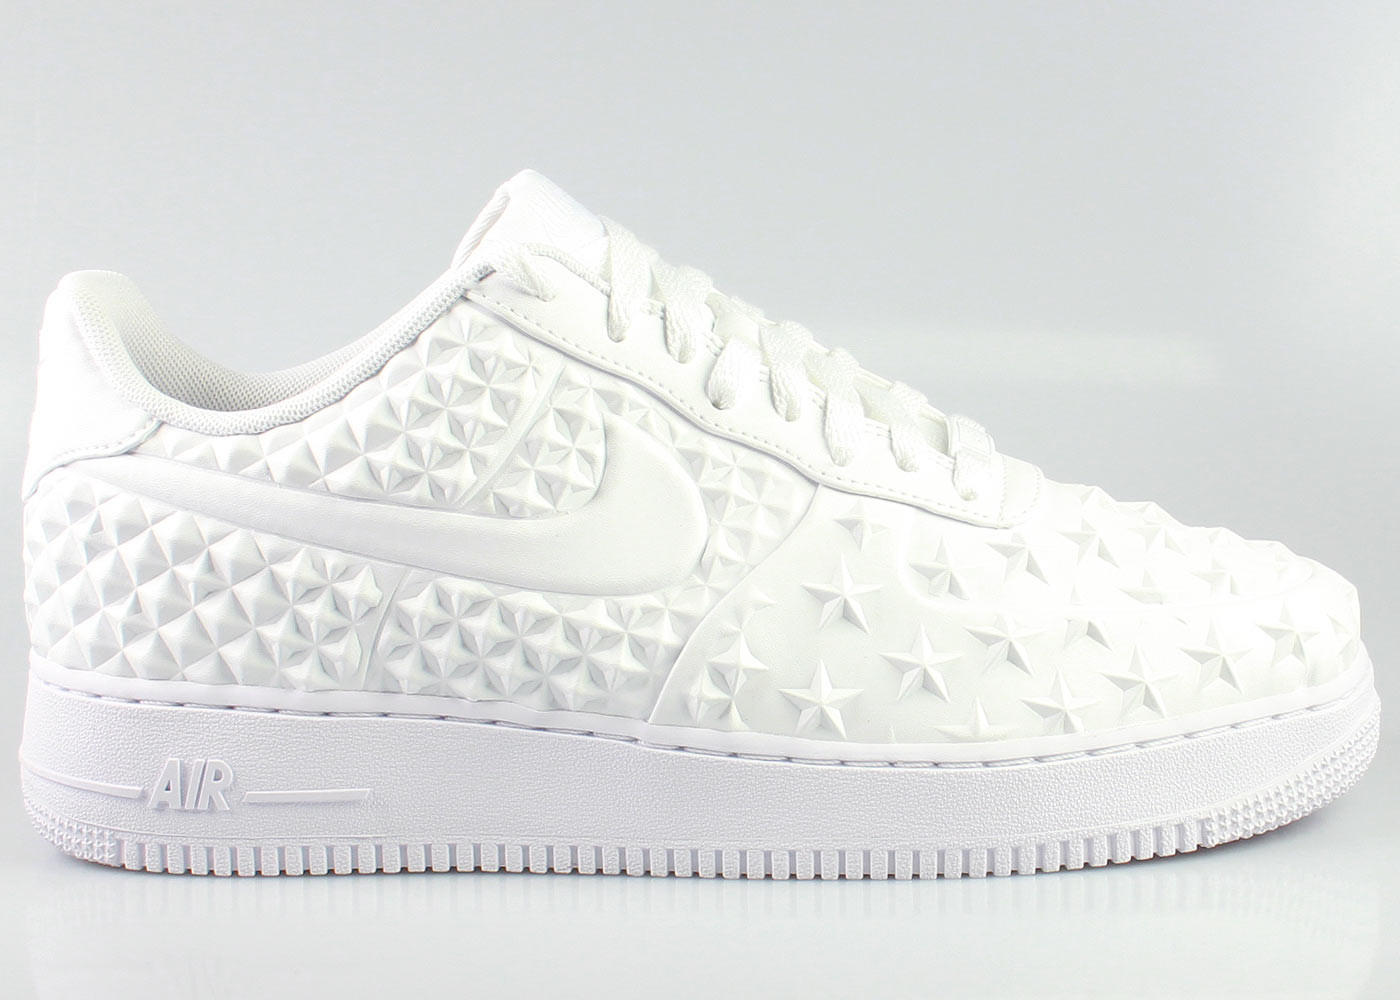 Nike Men s Air Force 1 Low LV8 VT Independence Day Pack - White 1e35dffa85